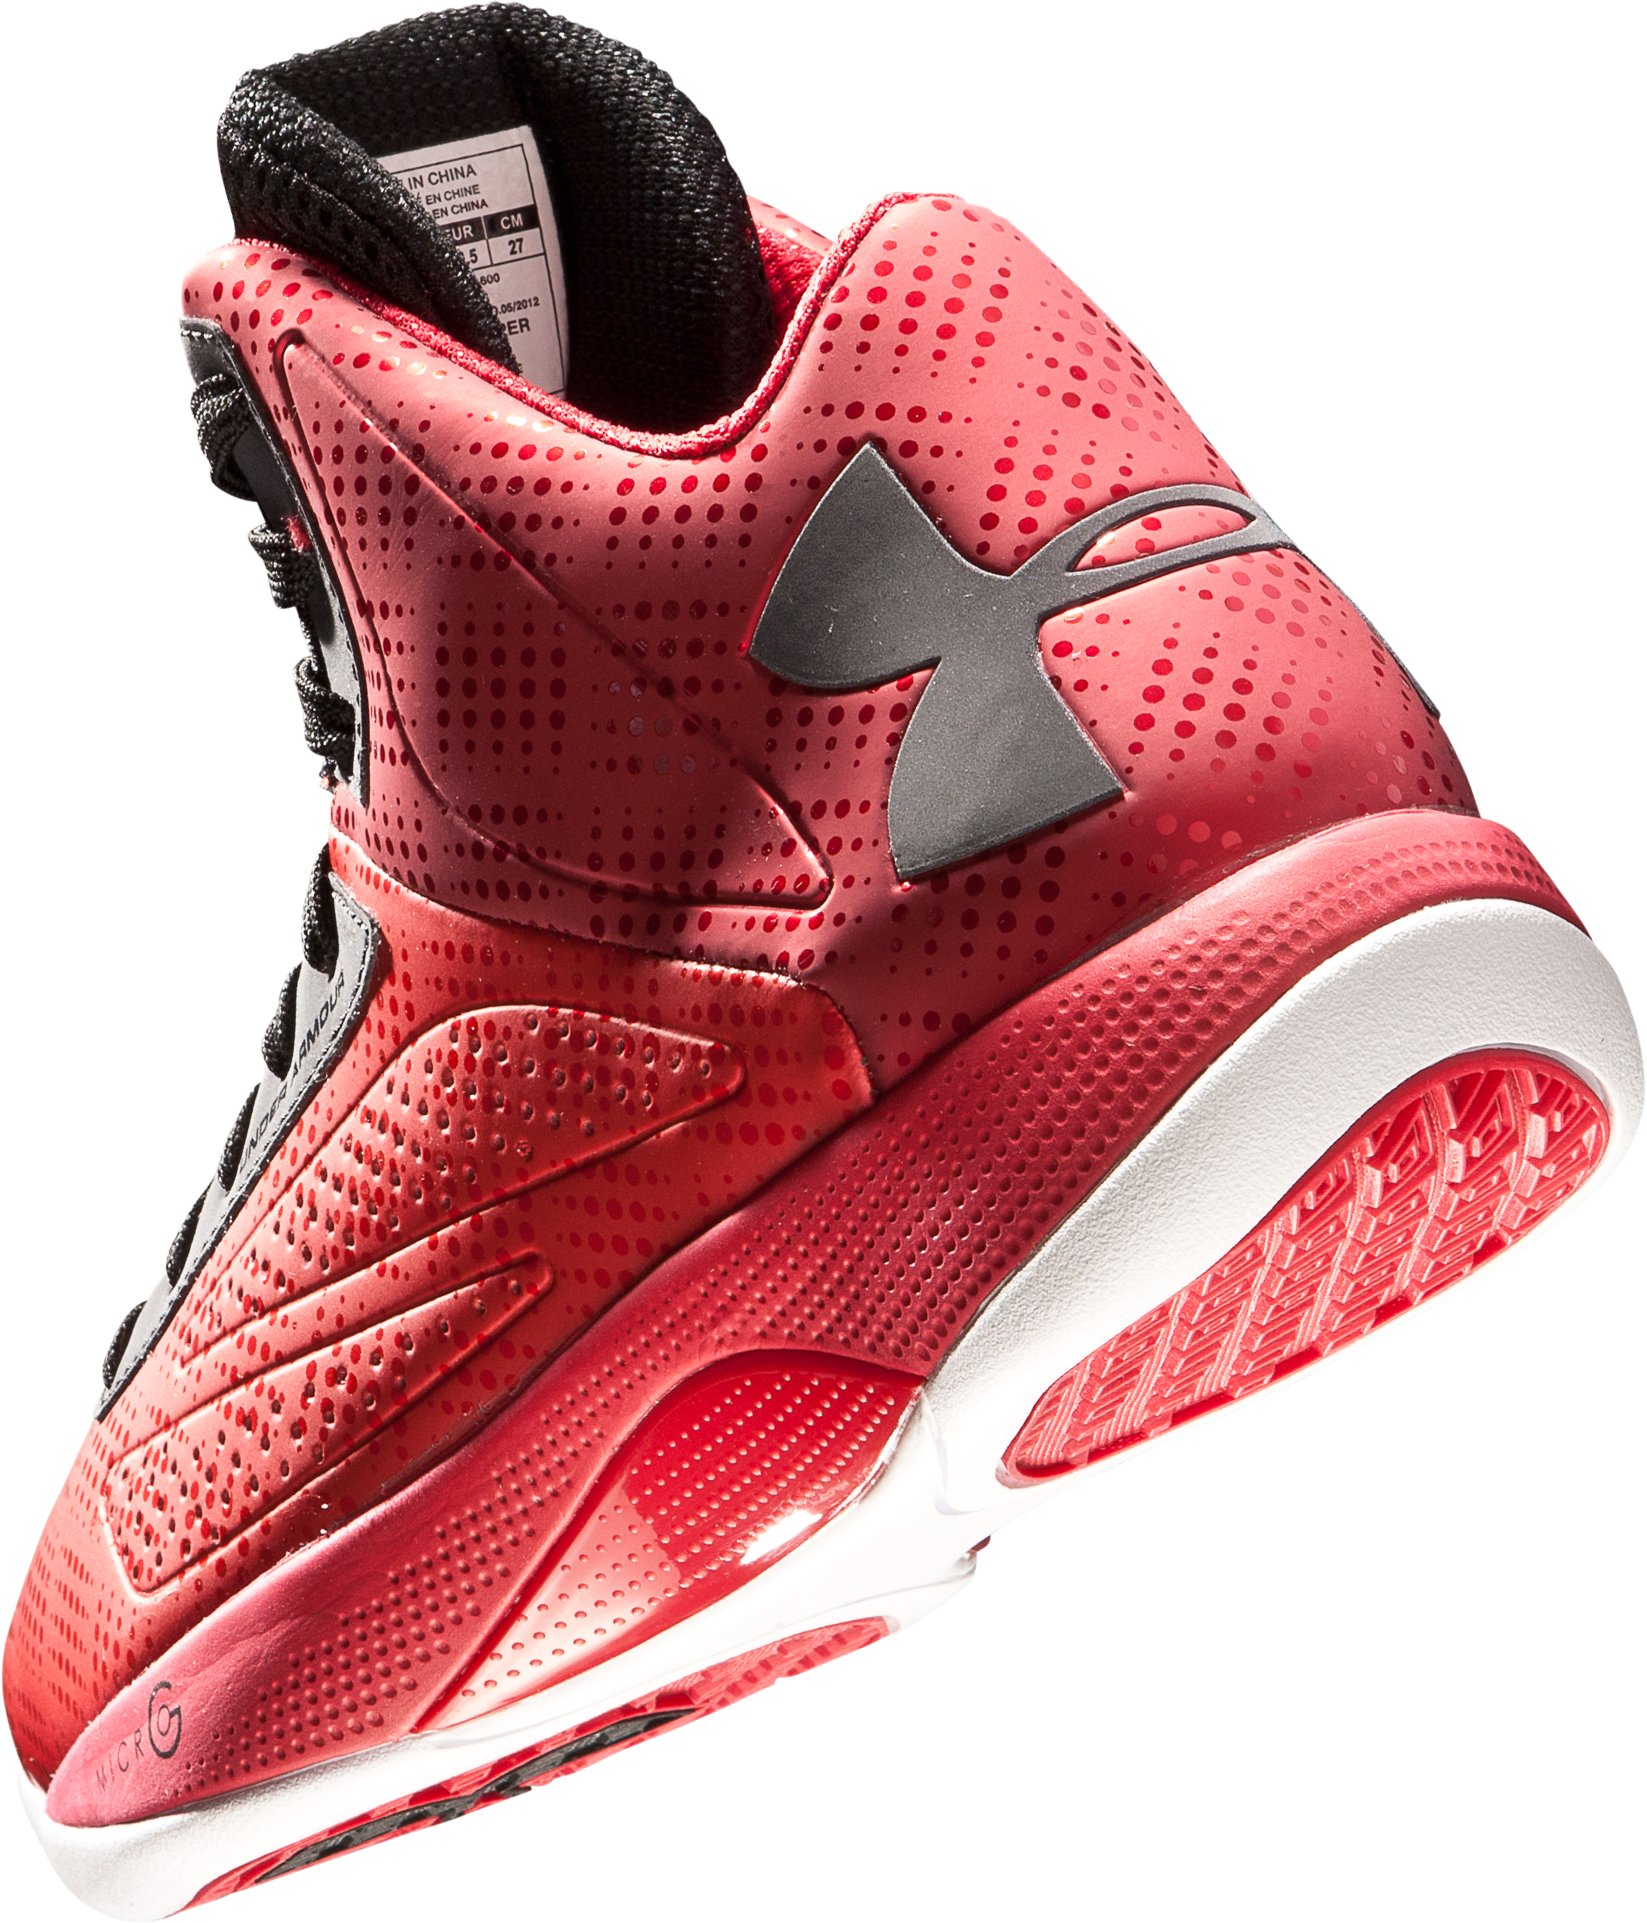 Men's Micro G® Torch Basketball Shoes, Red